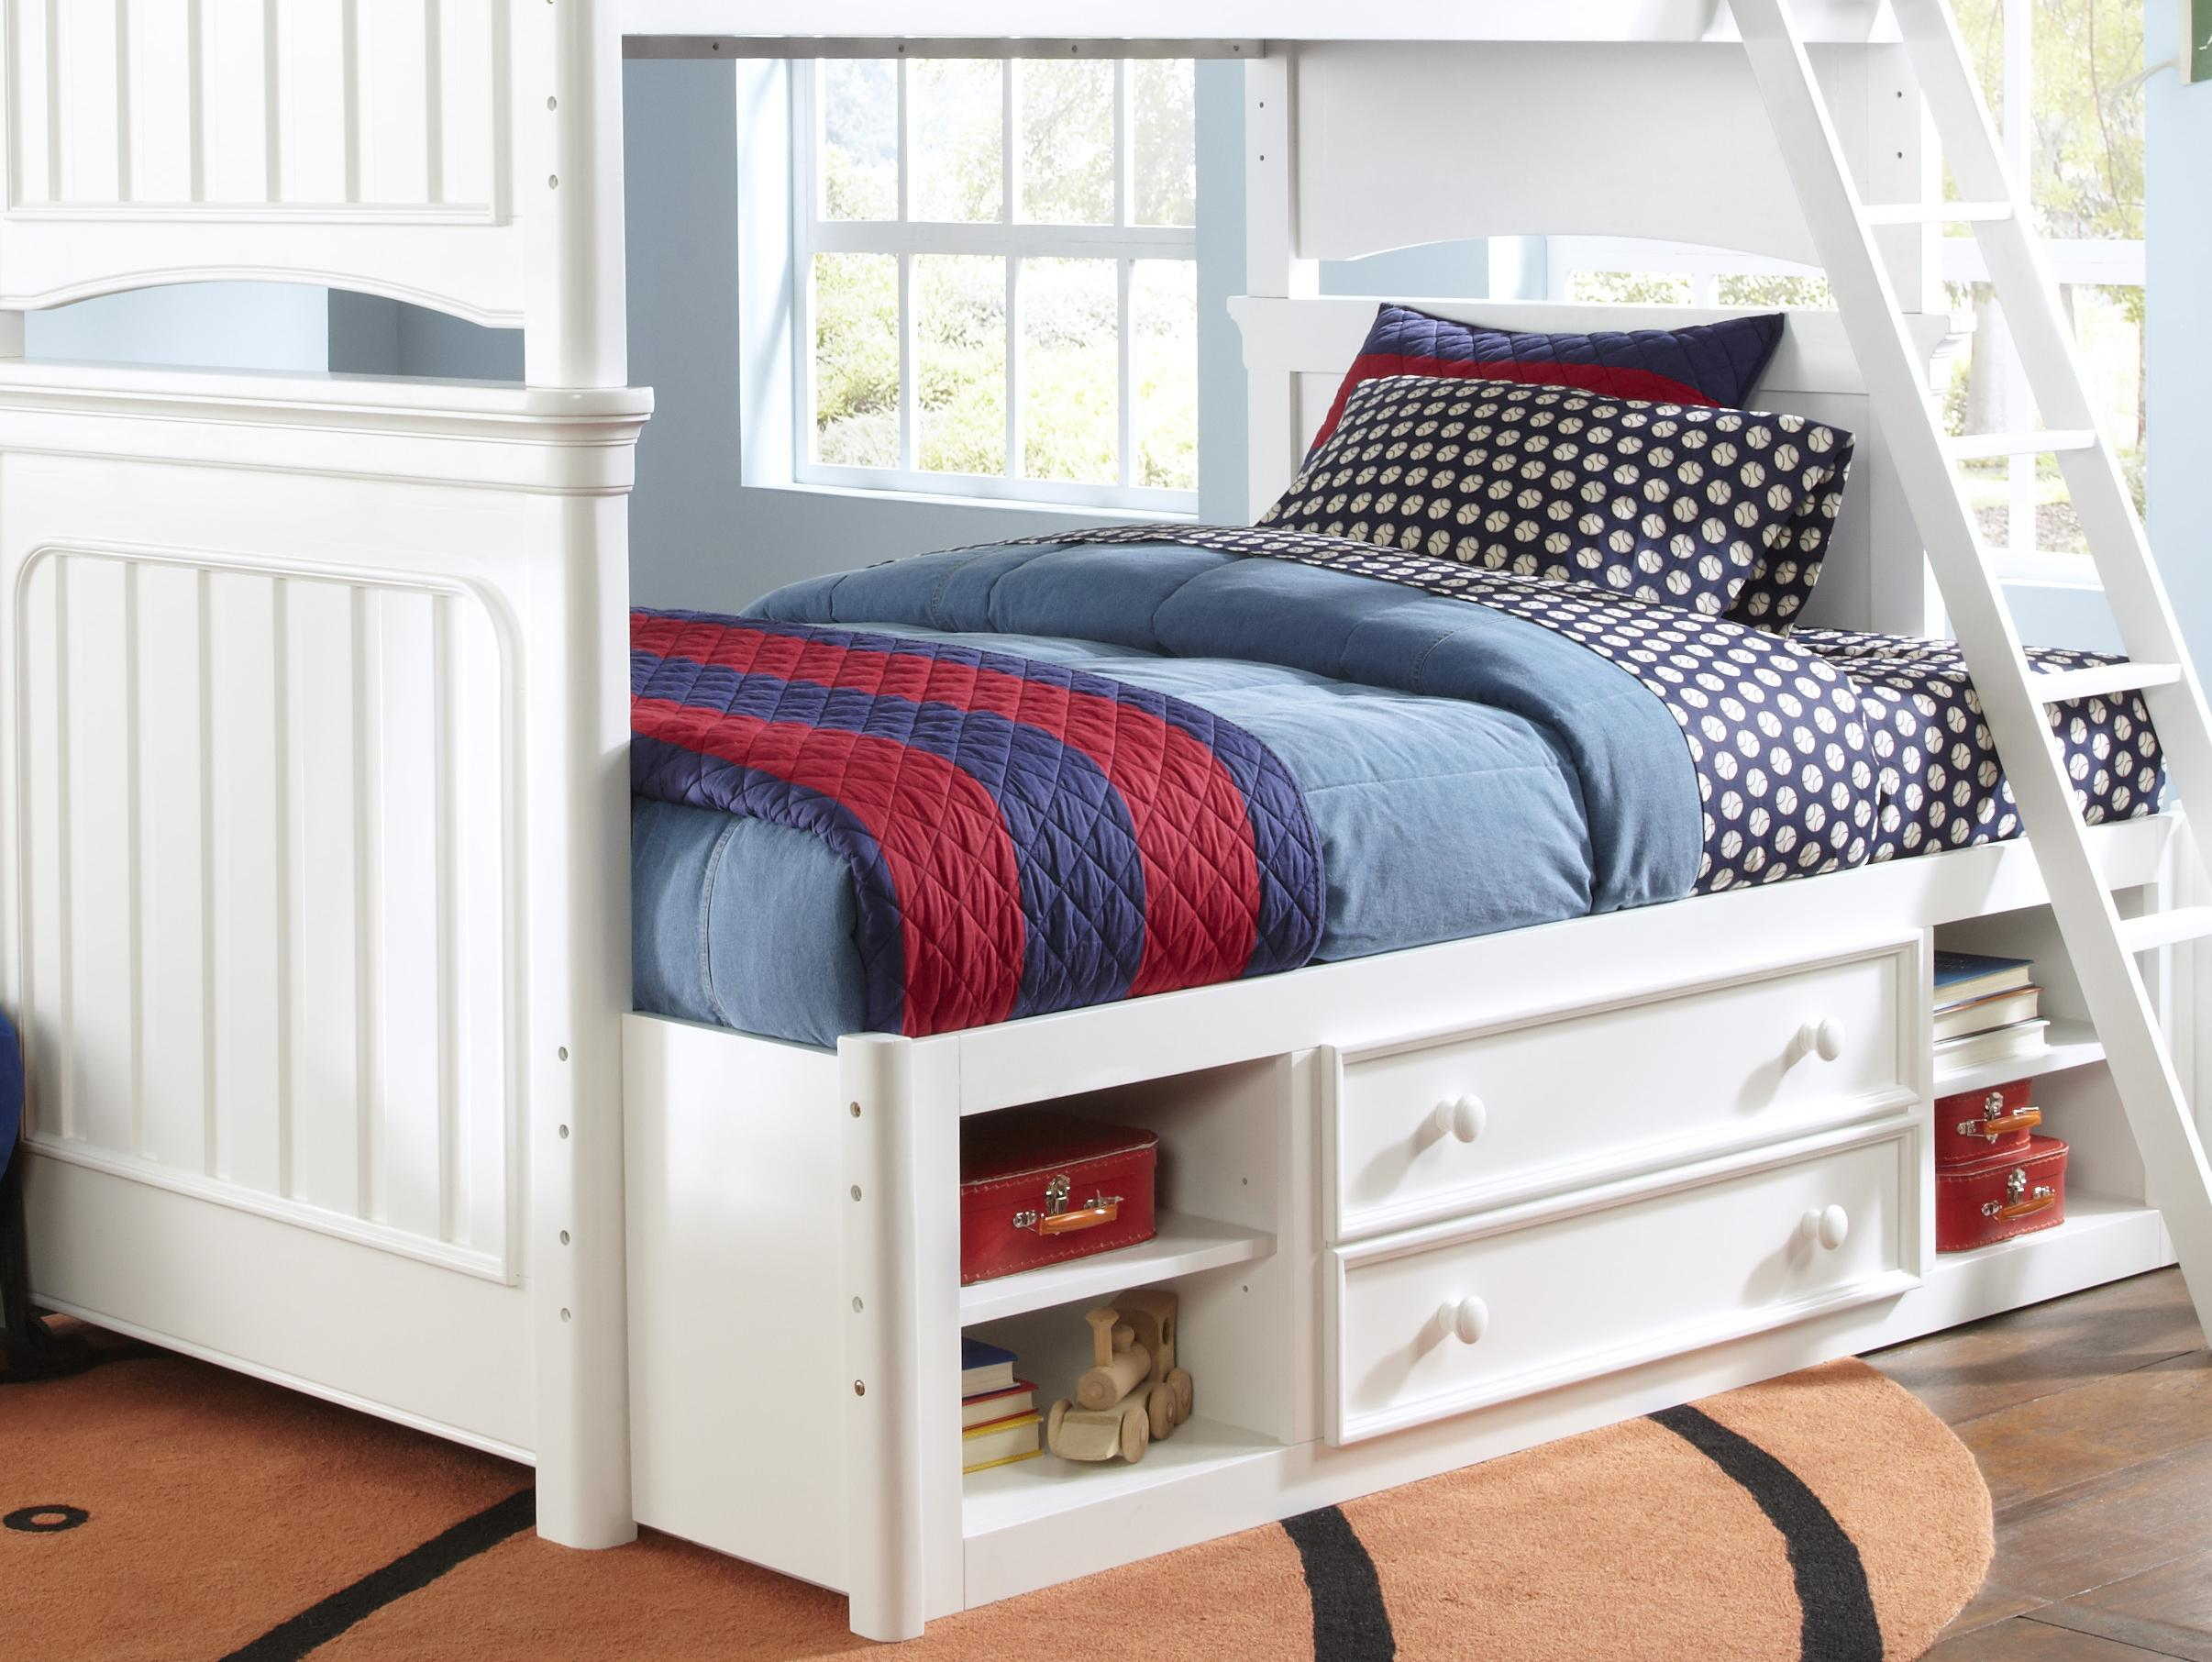 Kidz Gear Campbell Summertime Bunk Bed with Storage - Item Number: 8466-730+732+33+46+731+643+733